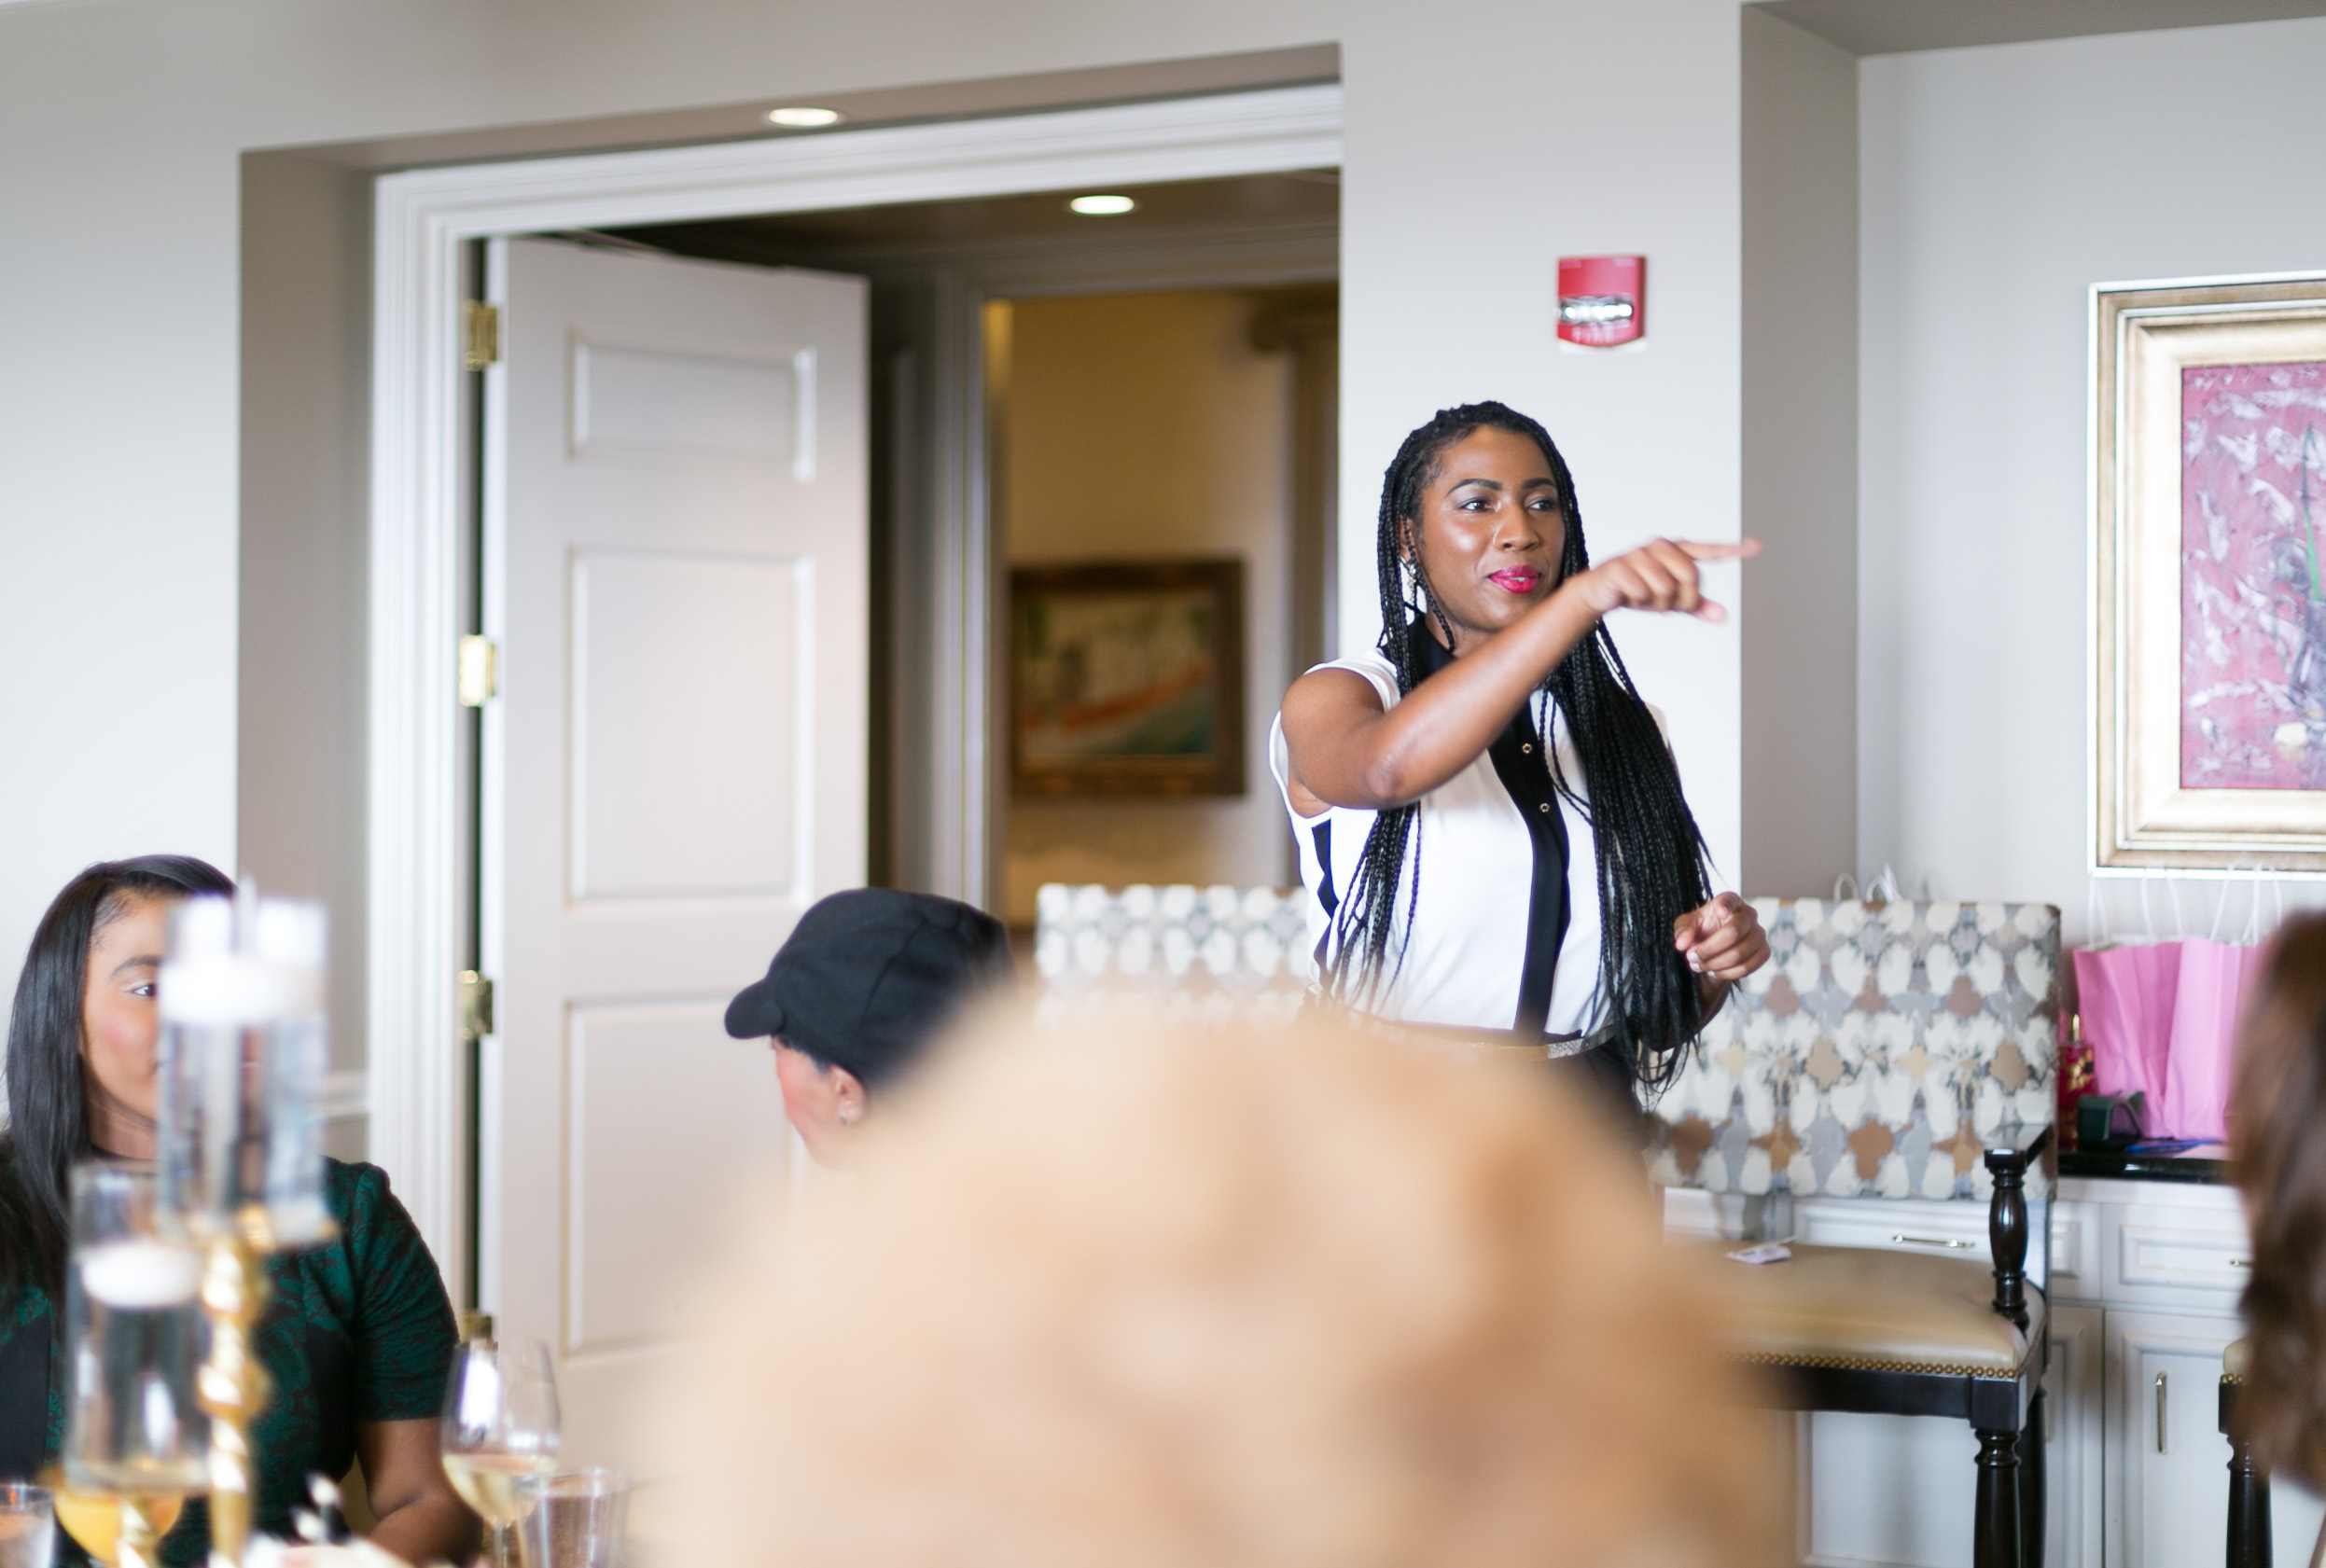 Motivation - The Boss Babes Brunch Tour features a keynote speaker, workshop speakers, and the Boss Babe Panel. These ladies provide practical tools and best practices that will inspire you to take your brand to the next level.